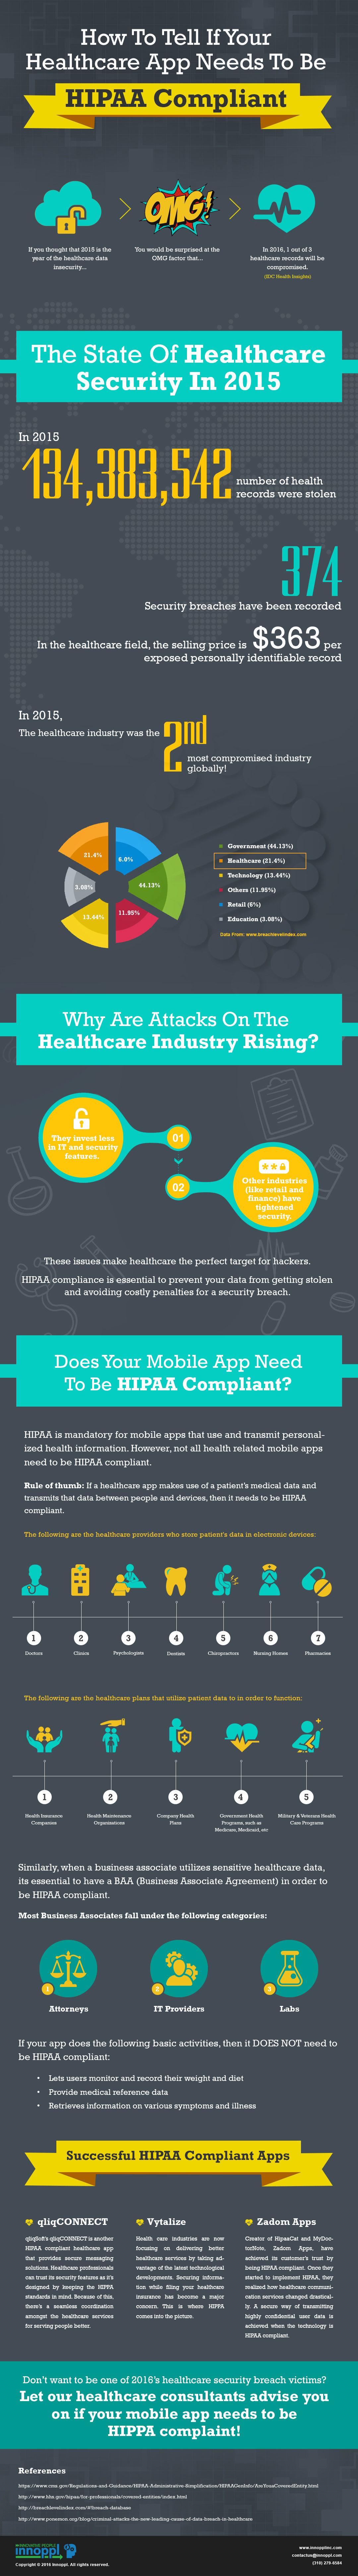 What is HIPAA compliance? Do you need compliance for your mobile app?